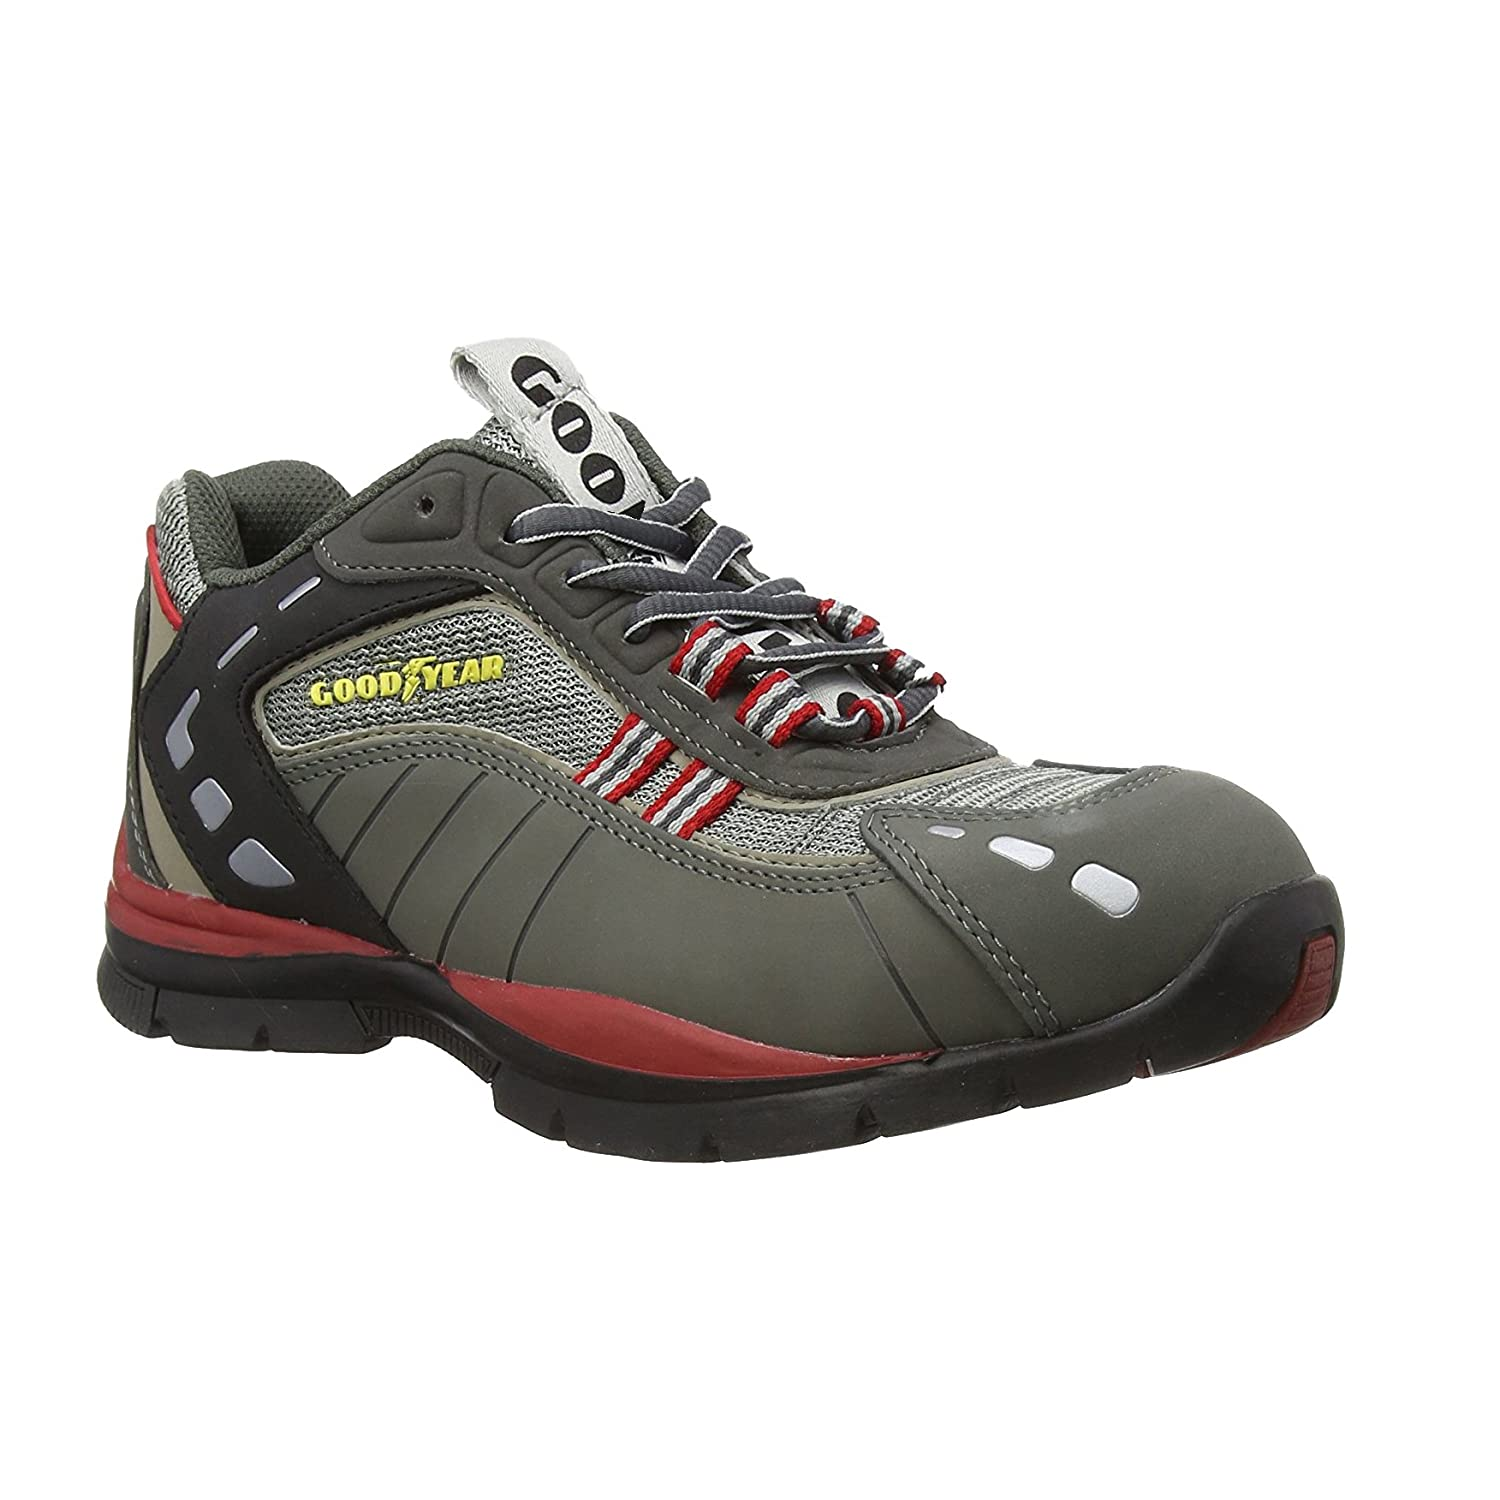 321b3c2318f Goodyear Unisex Adults' Gyshu3011 Safety Shoes